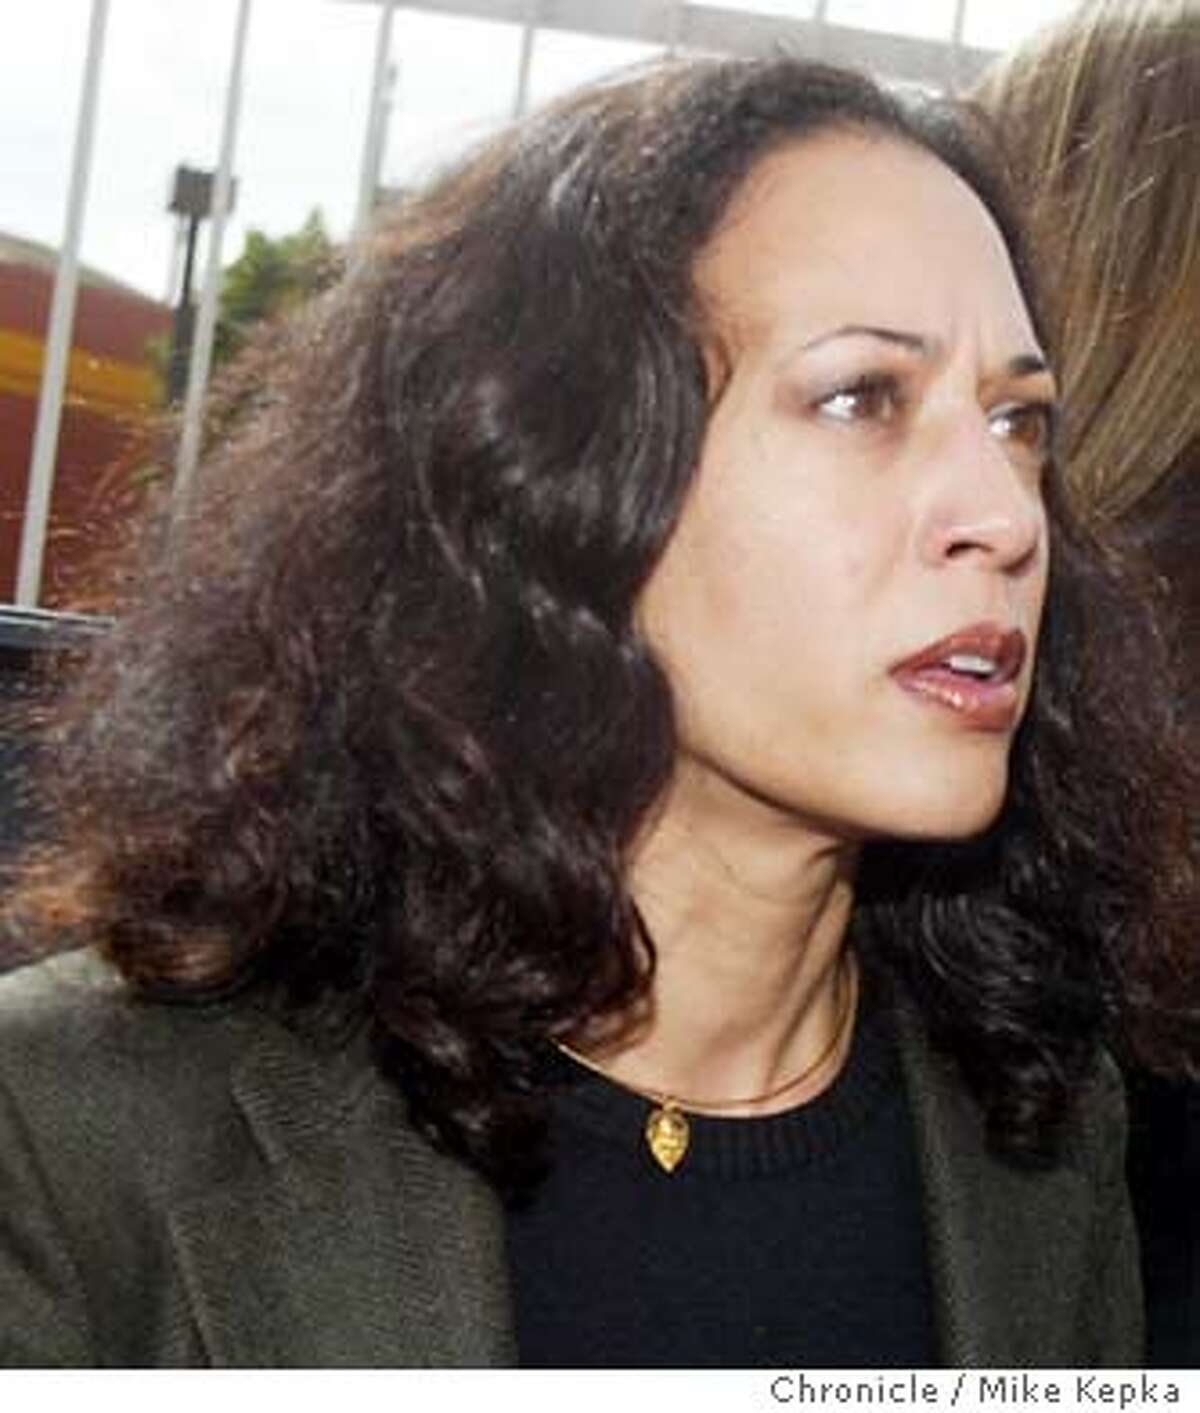 harris0030_mk.jpg Kamala Harris meets with supporters in front of the 24th street BART station while on the campain trail with Cruz Bustamonte. Harris is running for District Attorney in San Francisco. 10/4/03 in San Francisco MIKE KEPKA/The San Francisco Chronicle